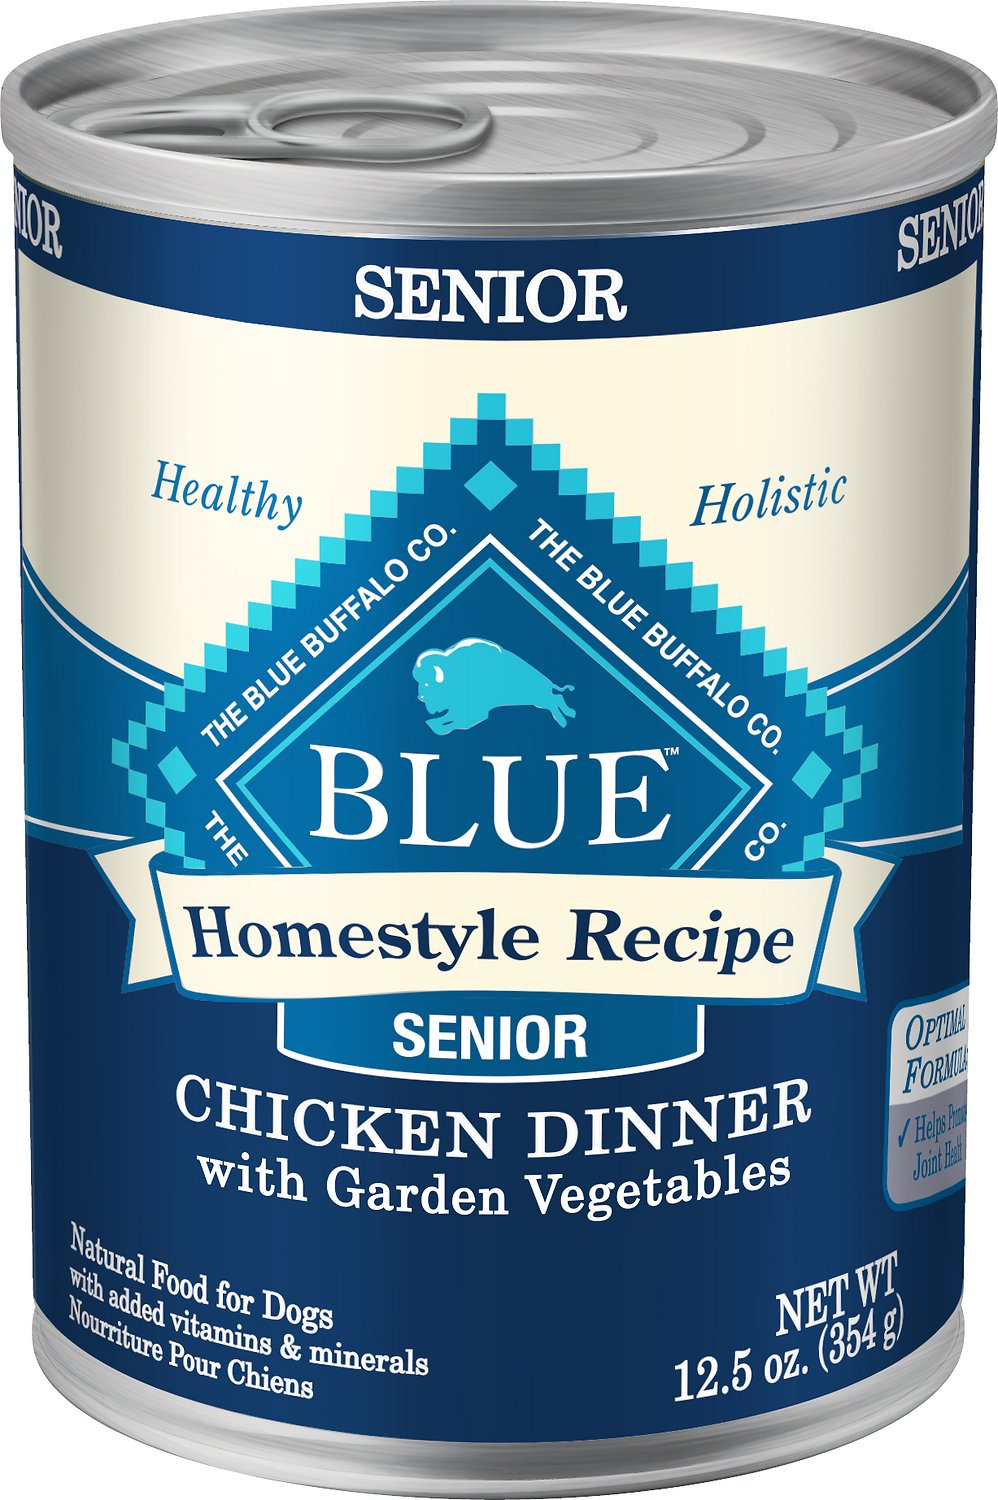 Blue Buffalo Homestyle Recipe Senior Chicken Dinner with Garden Vegetables Canned Dog Food Image